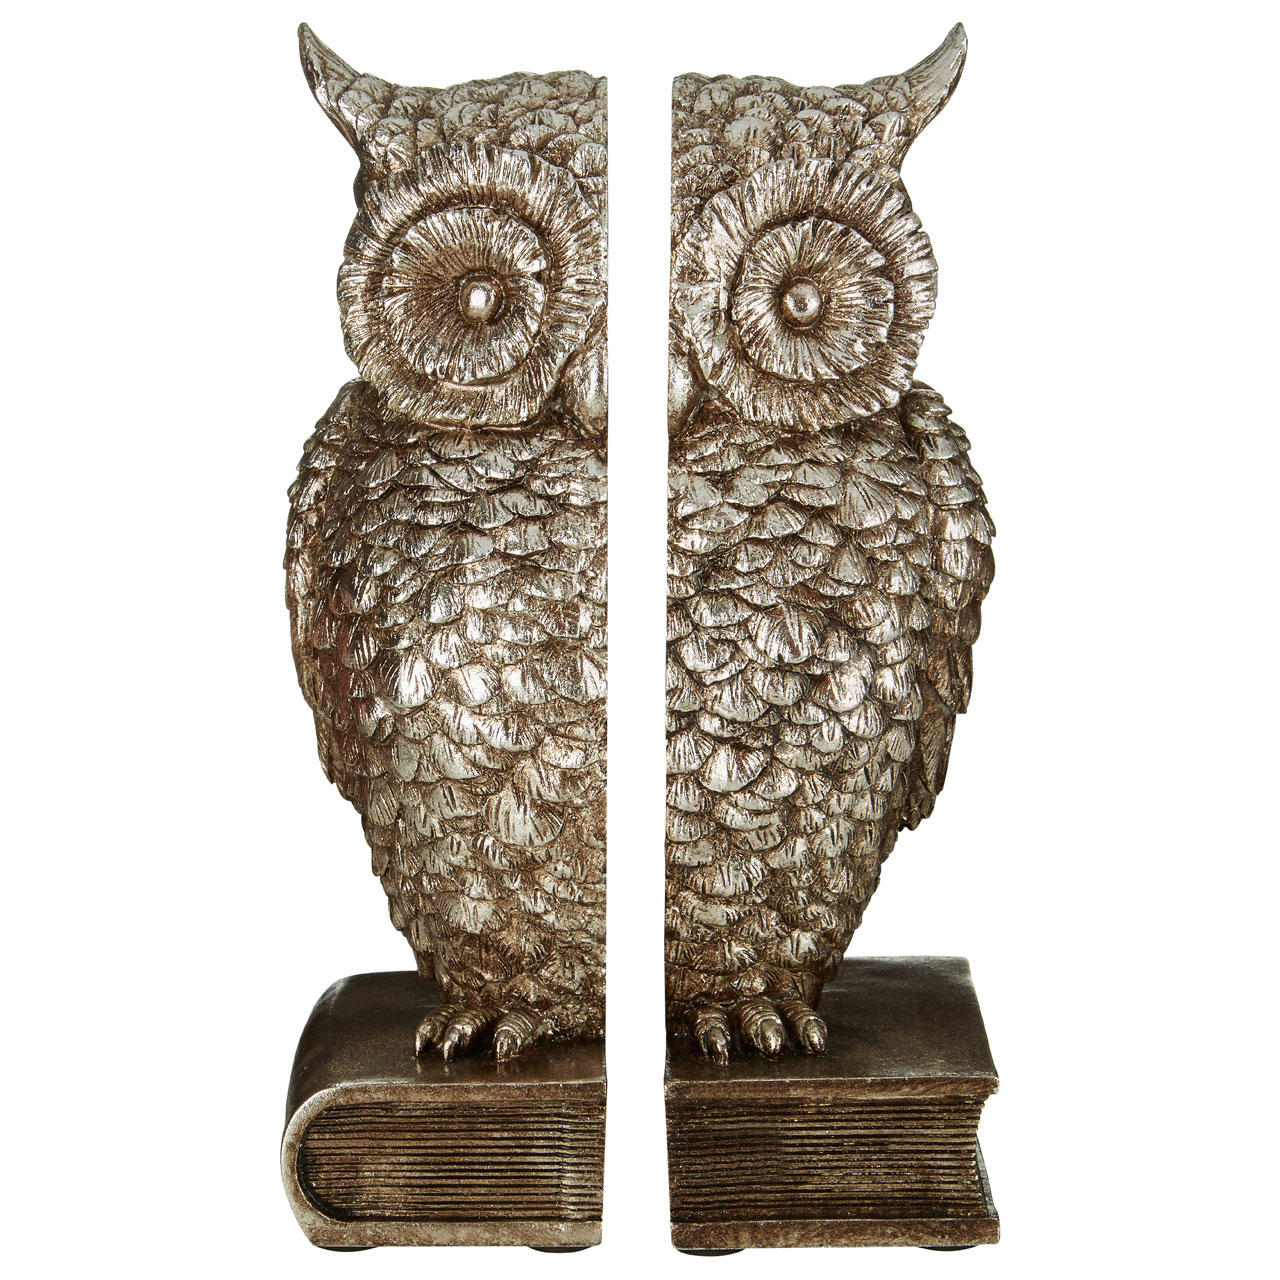 Prime Furnishing Owl Bookends - Silver